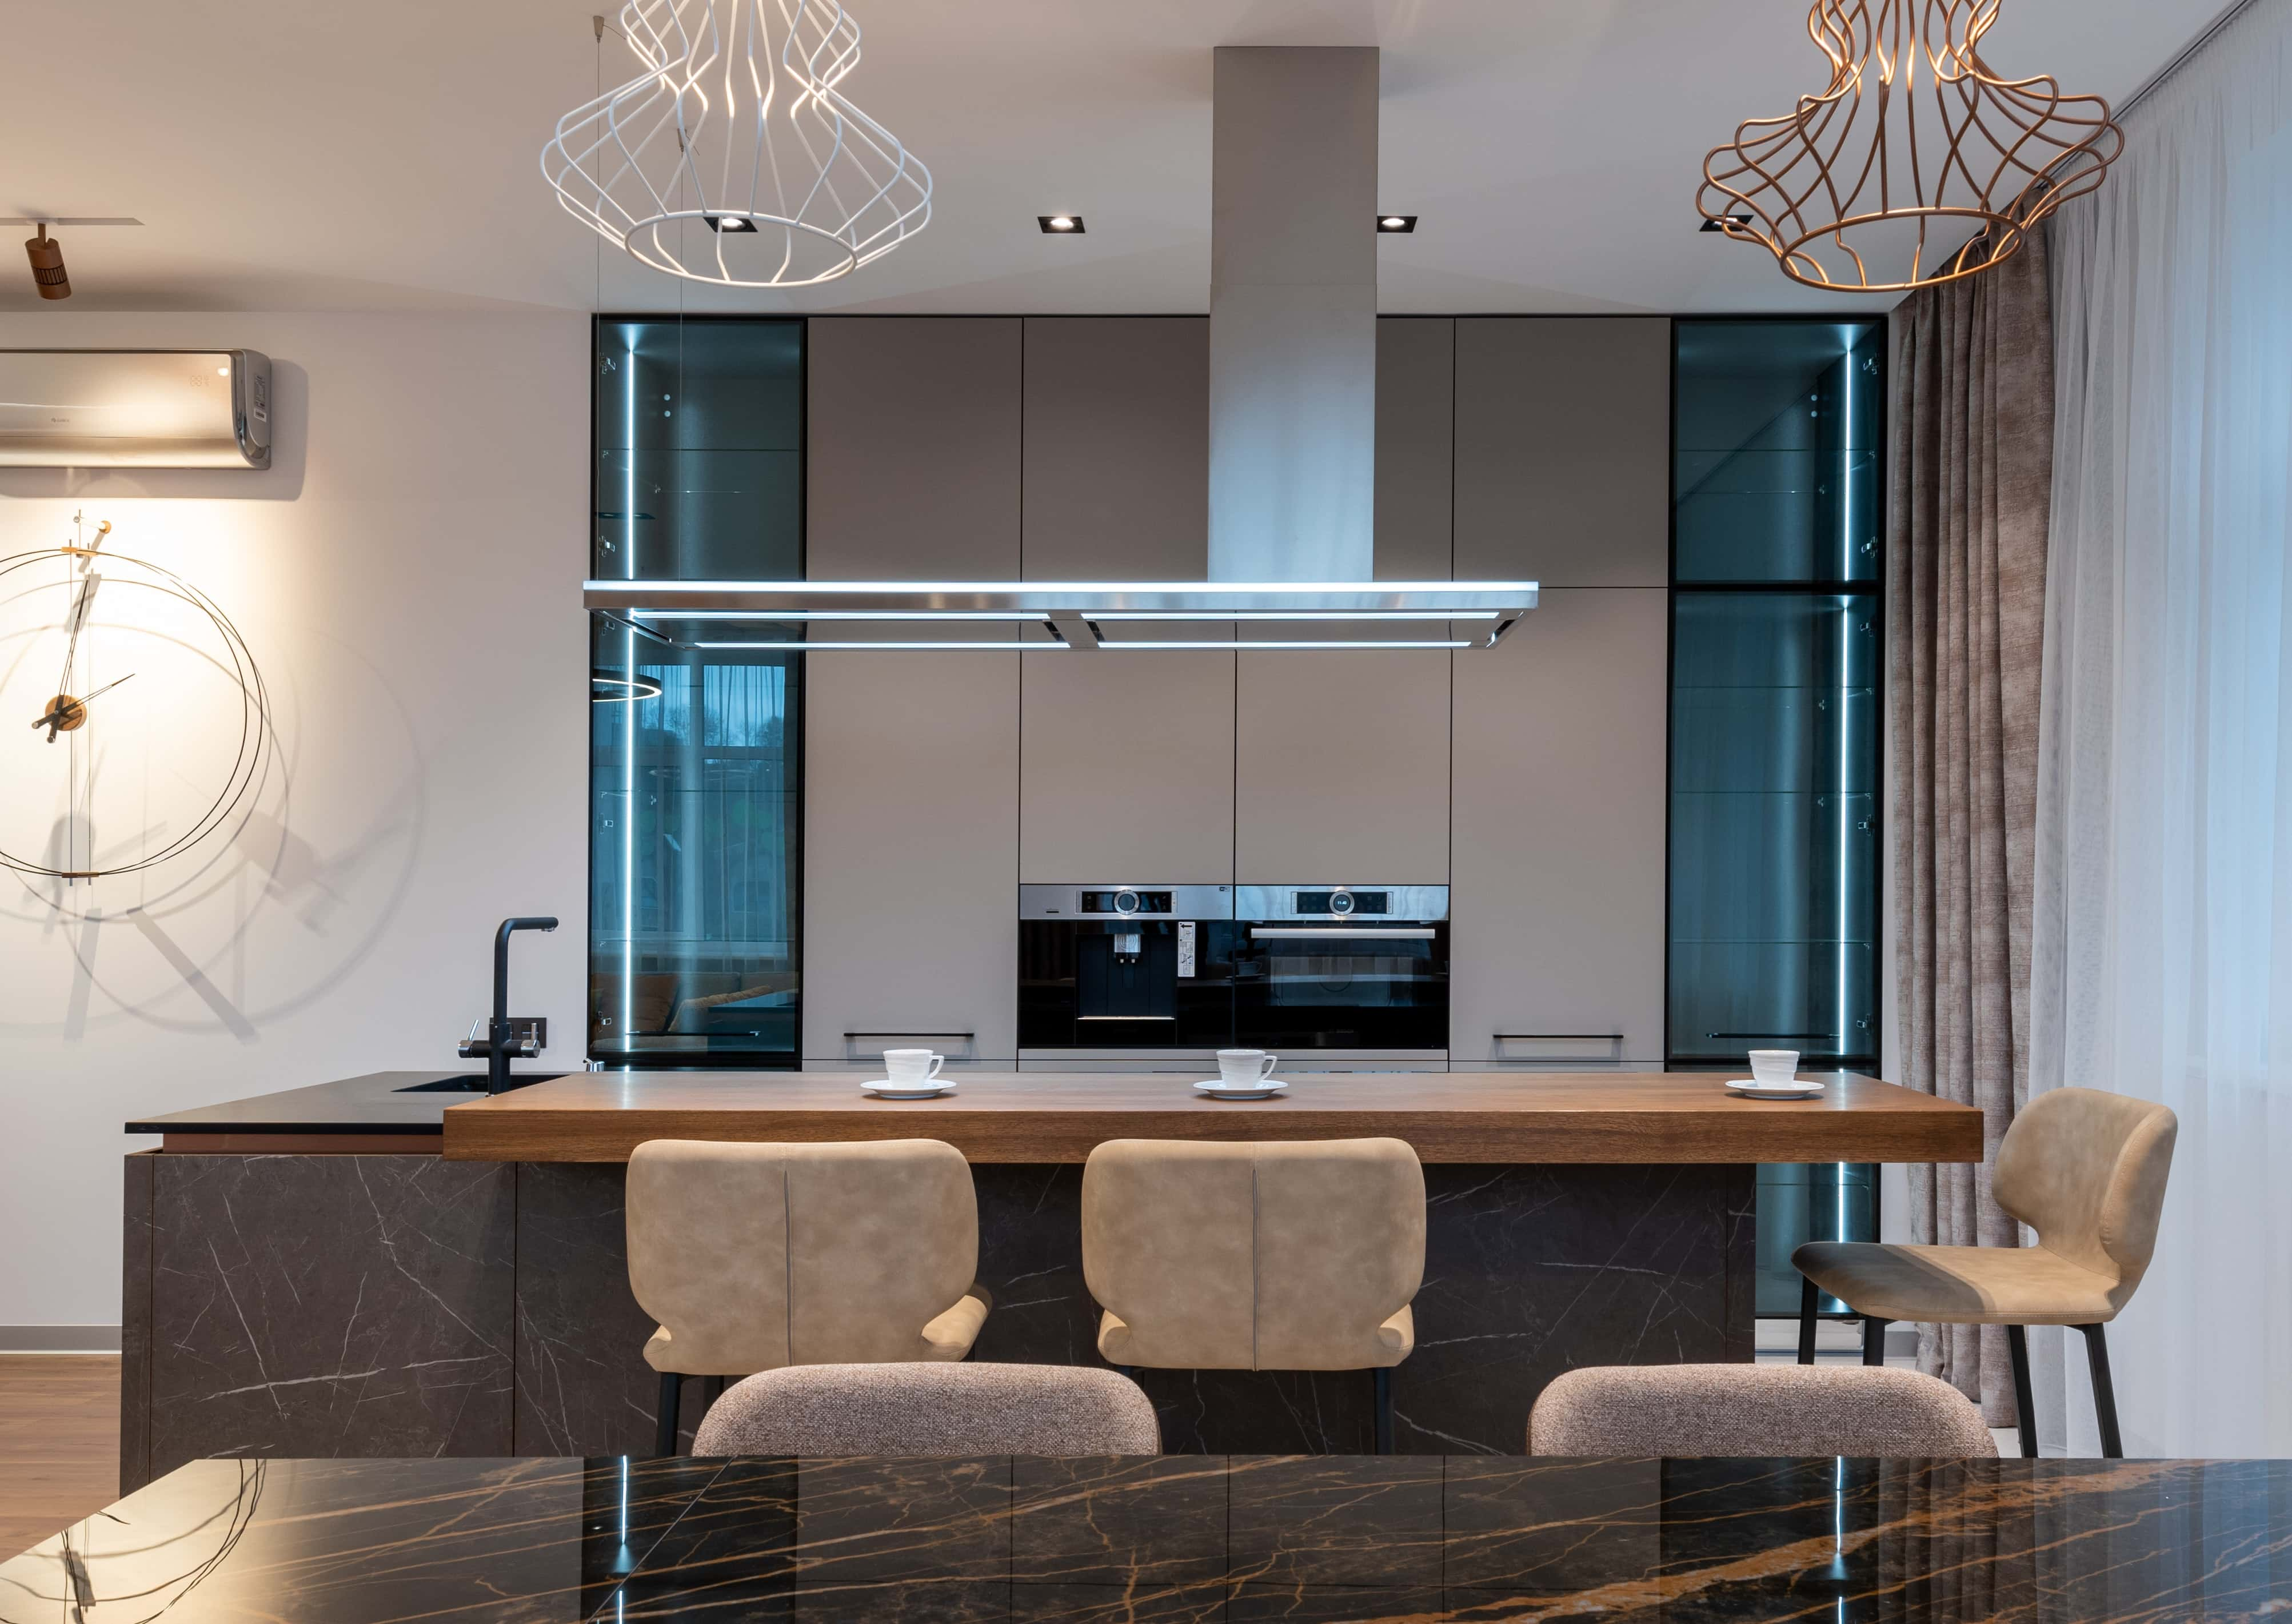 A smart home kitchen with smart lighting